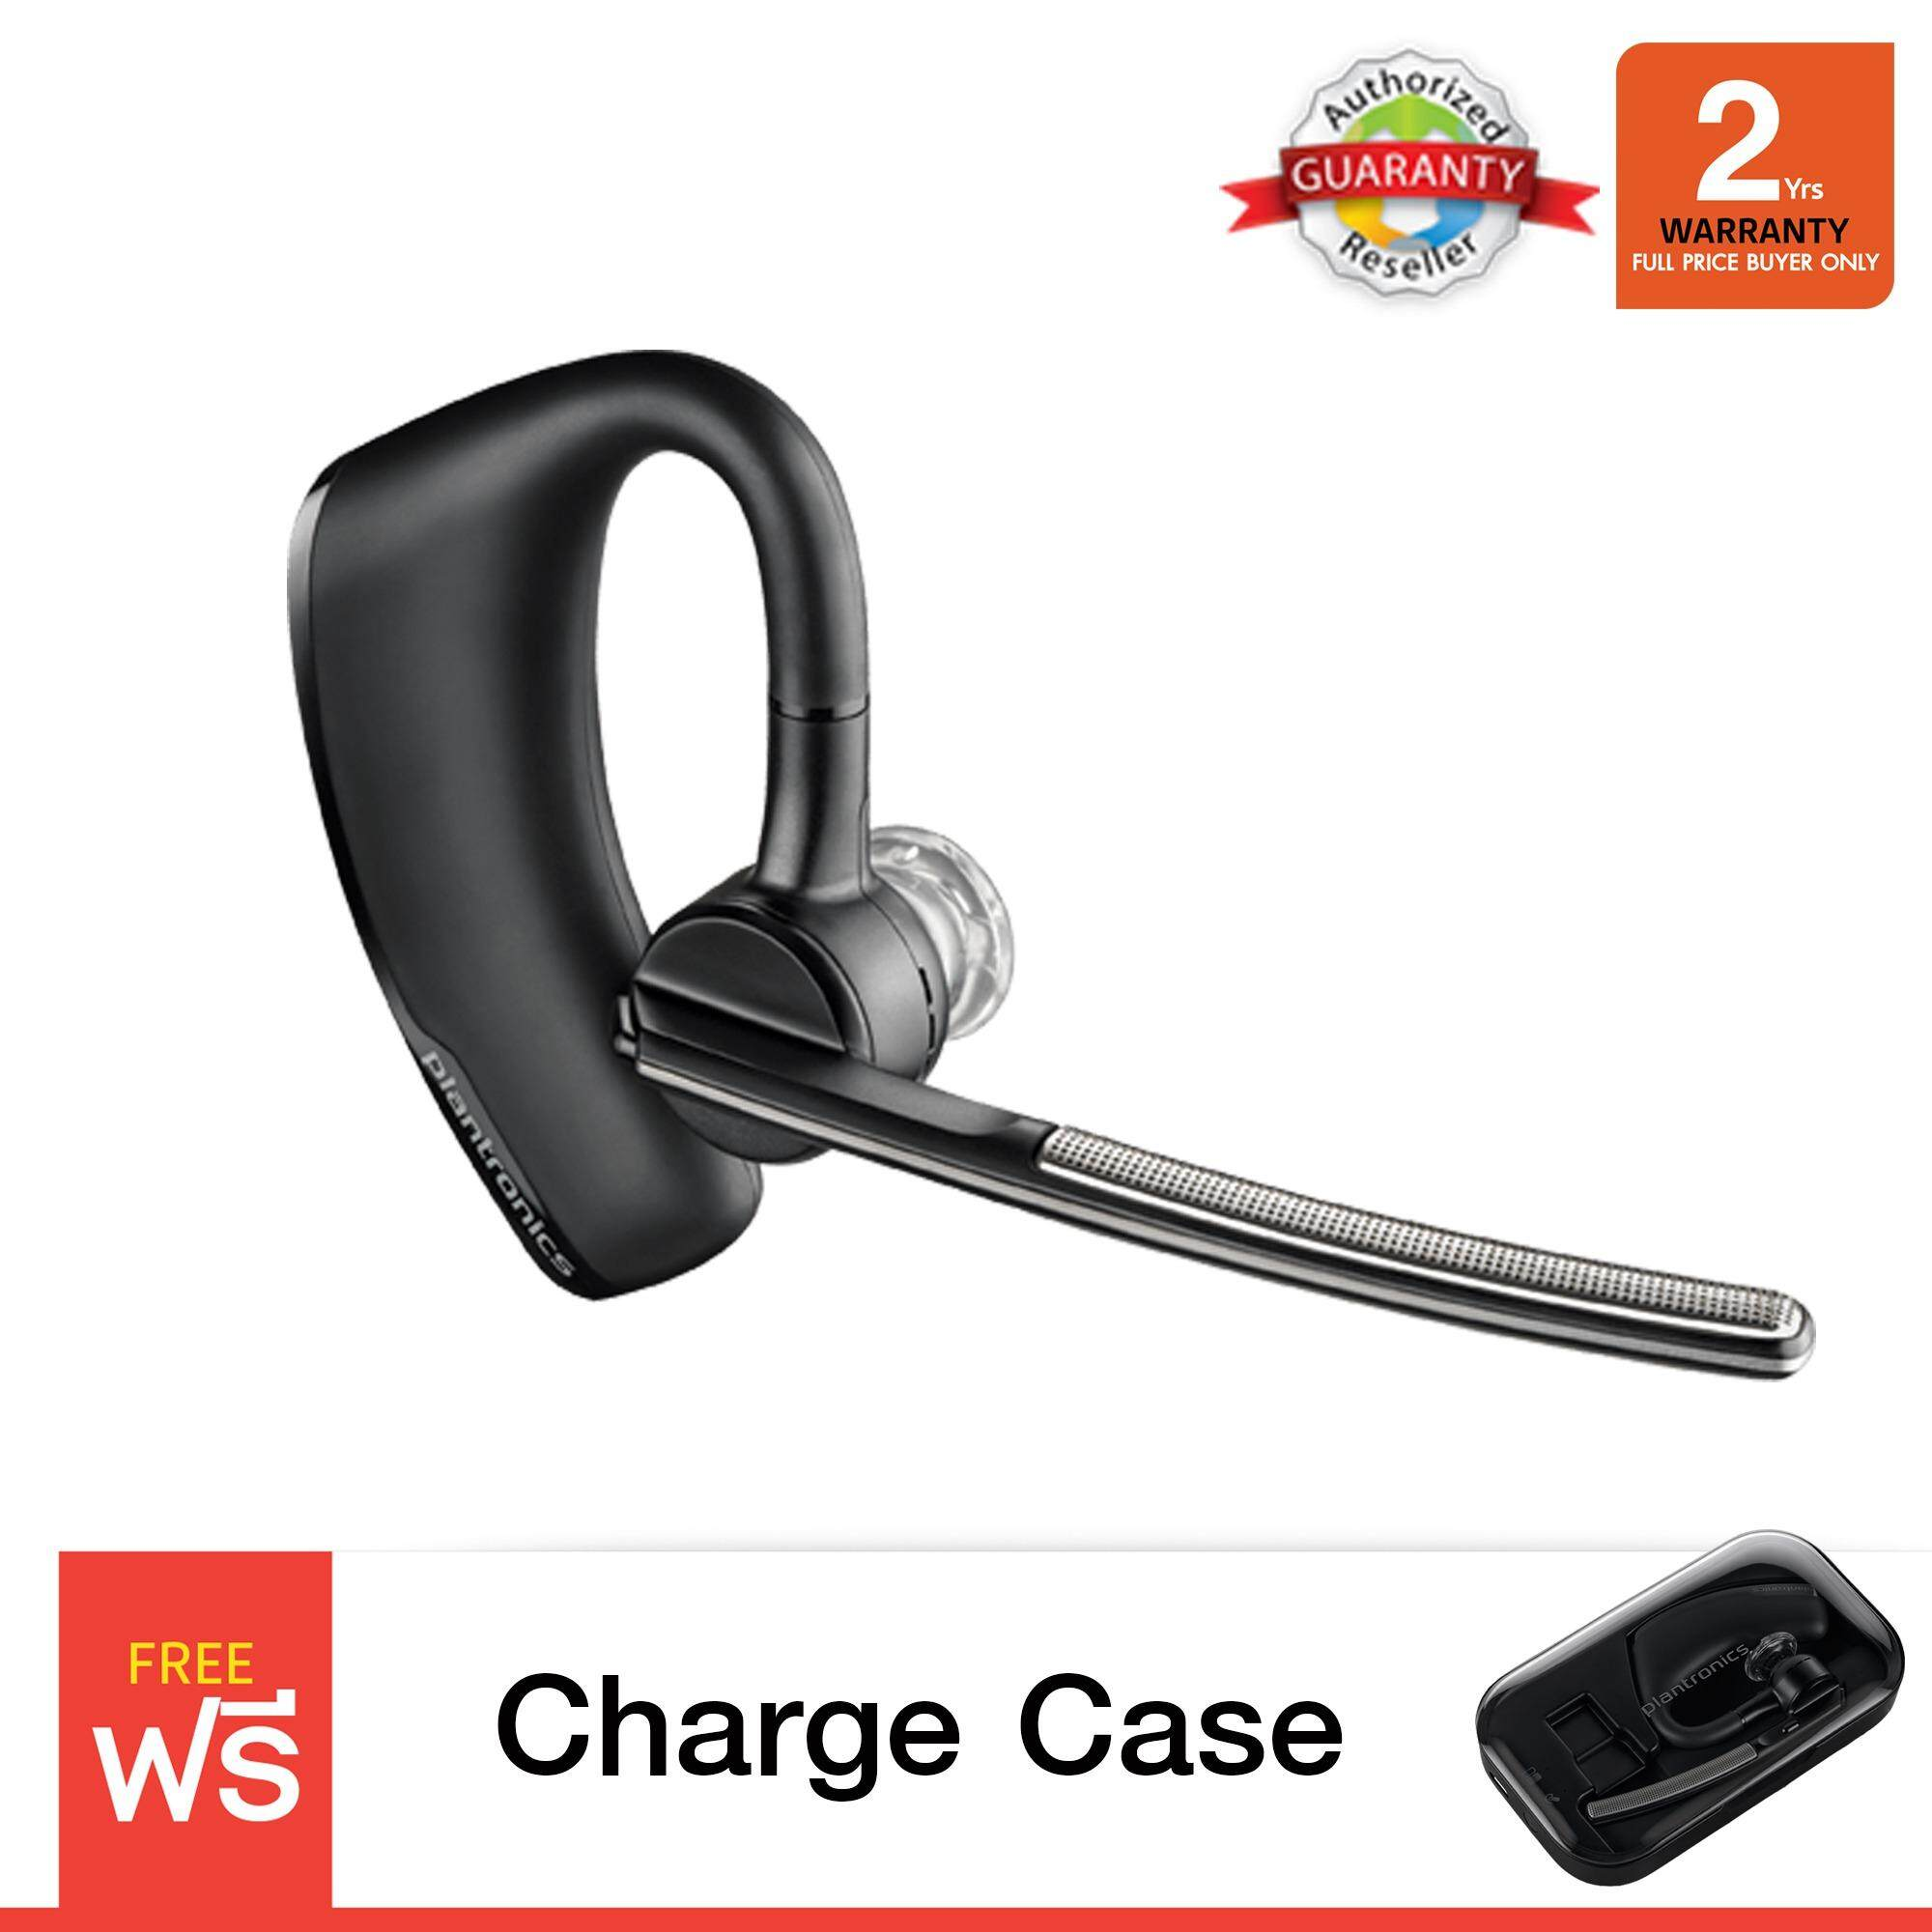 Plantronics Voyager Legend with Case 2 Years Warranty